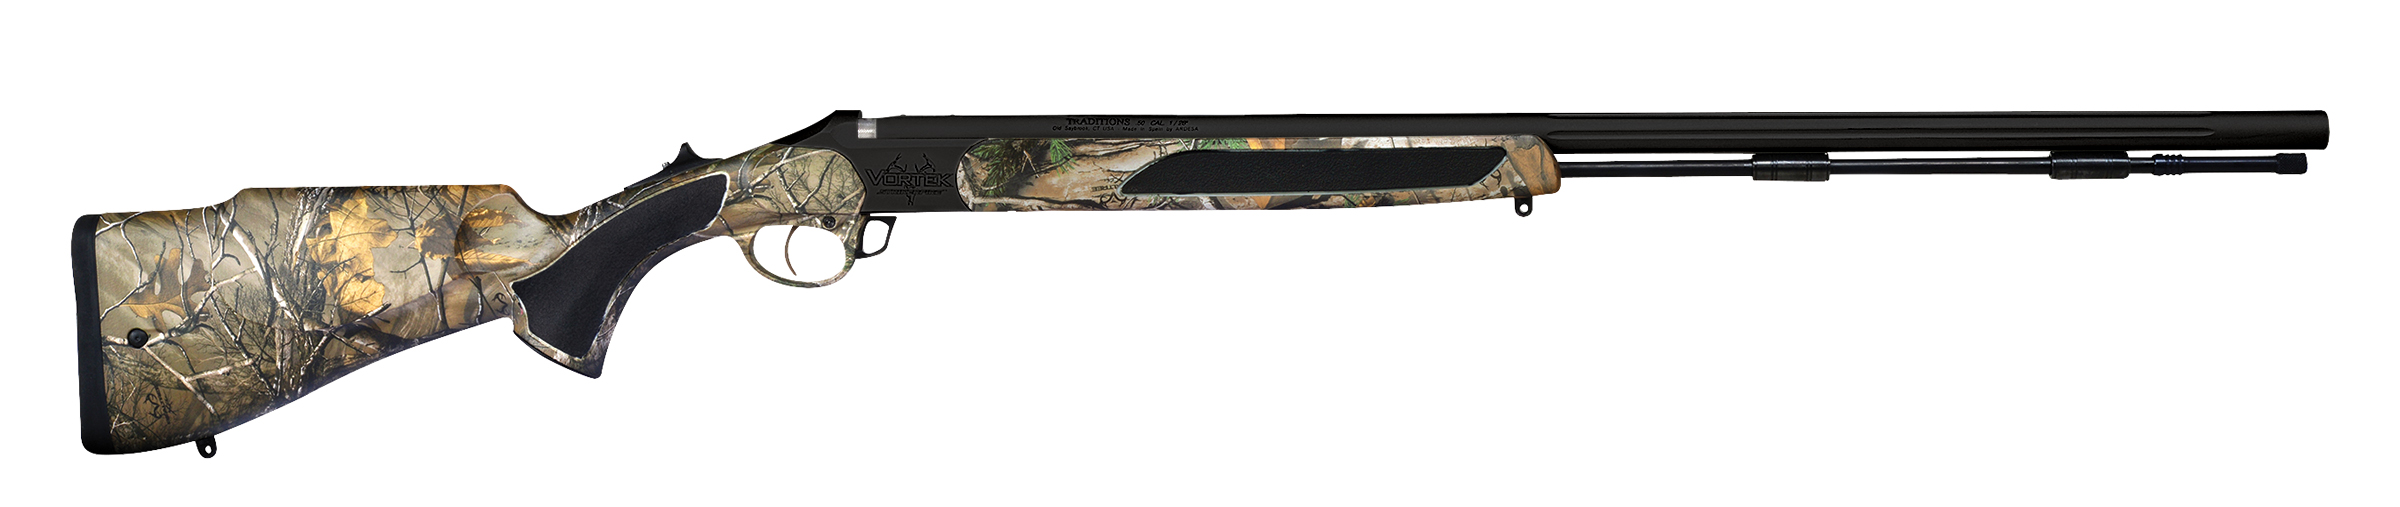 Traditions Vortek StrikerFire™ LDR .50 cal Realtree Xtra camo, Nitride Coating -  R599246NS